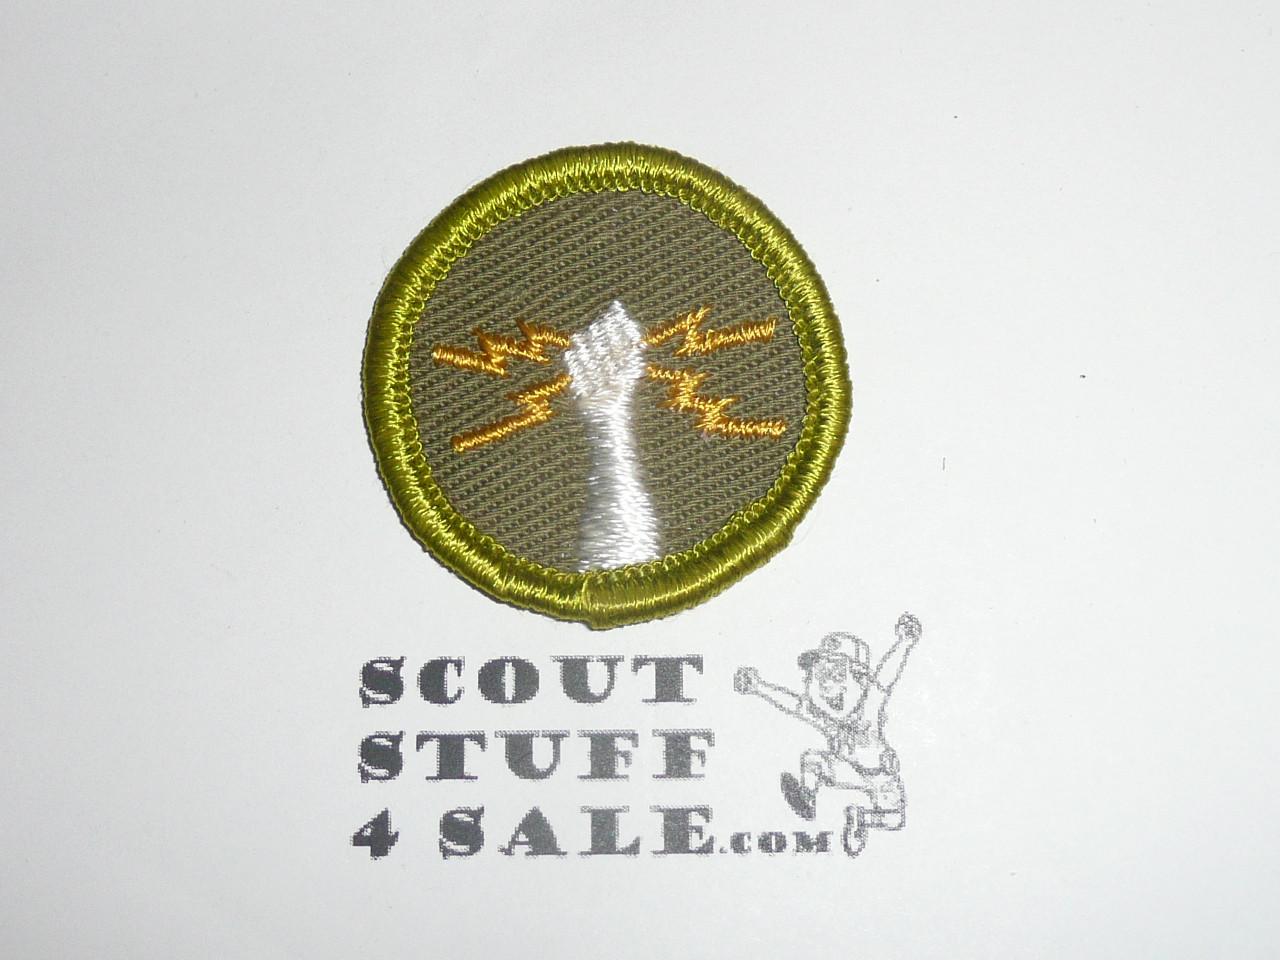 Electricity - Type F - Rolled Edge Twill Merit Badge (1961-1968), with fingers variety